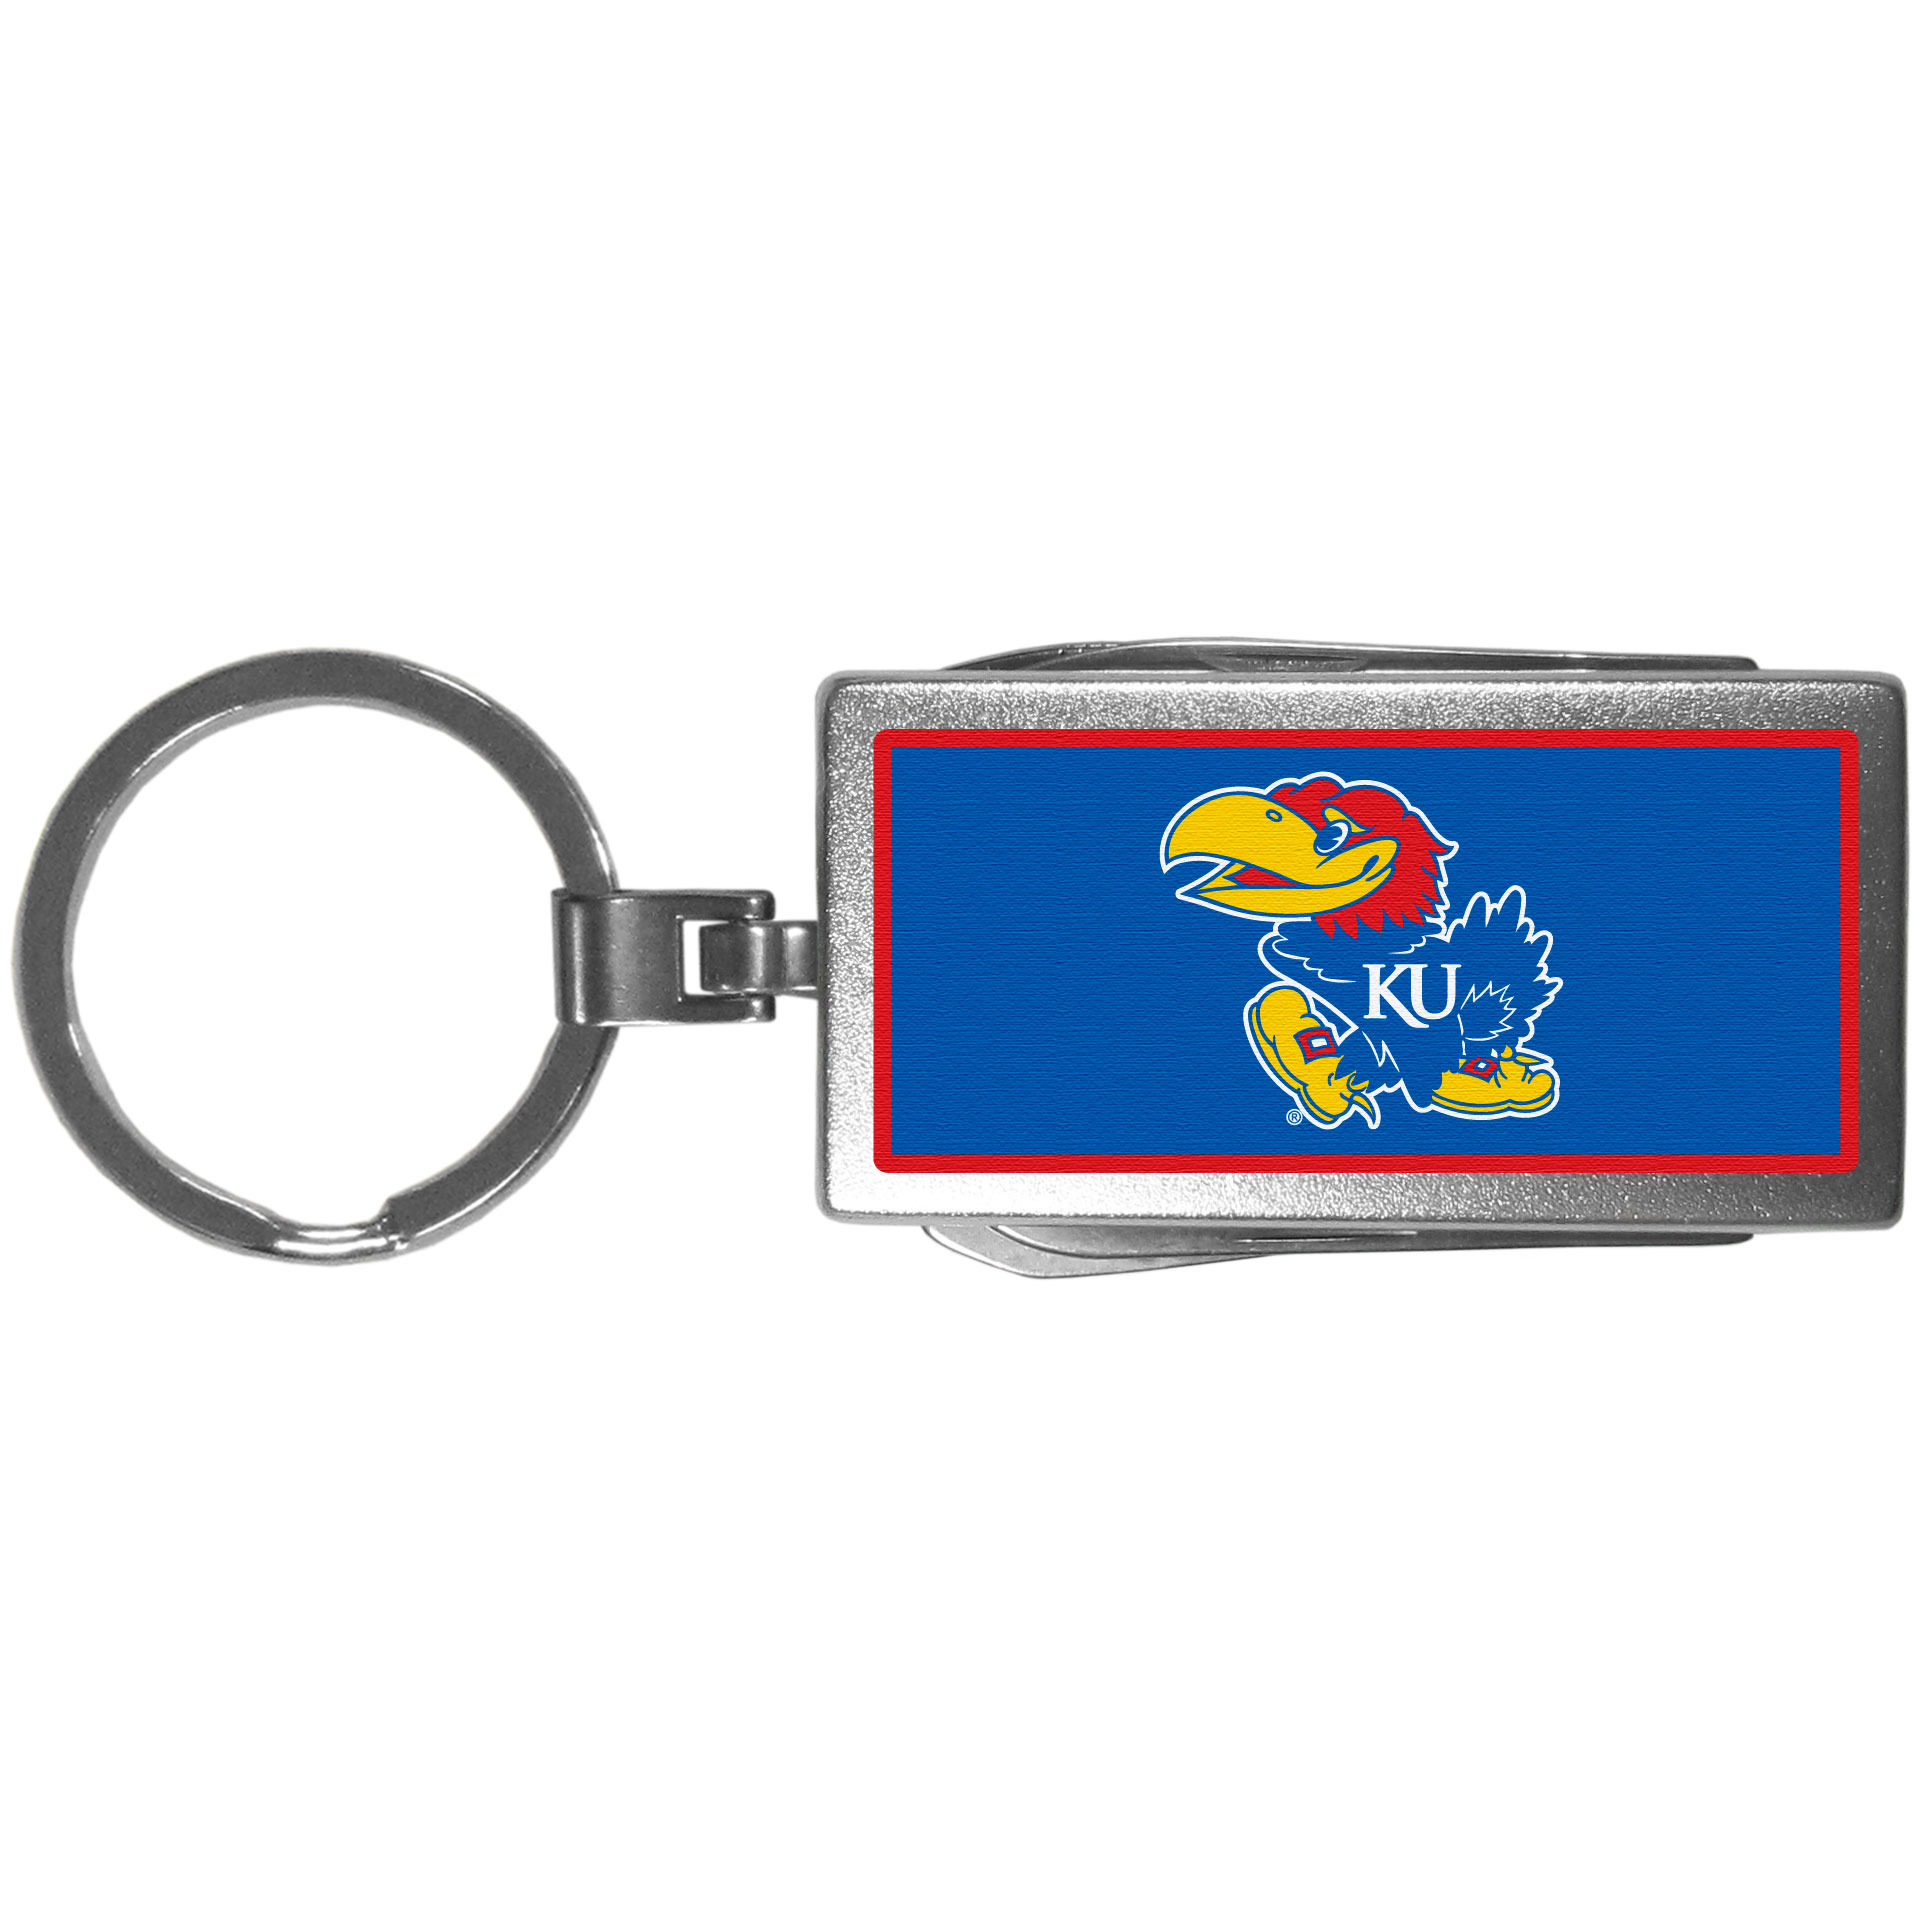 Kansas Jayhawks Multi-tool Key Chain, Logo - Be the hero at the tailgate, camping, or on a Friday night with your Kansas Jayhawks Multi-Tool Keychain which comes complete with bottle opener, scissors, knife, nail file and screw driver. Be it opening a package or a beverage Siskiyou's Multi-Tool Keychain goes wherever your keys do. The keychain hangs at 4 inches long when closed.